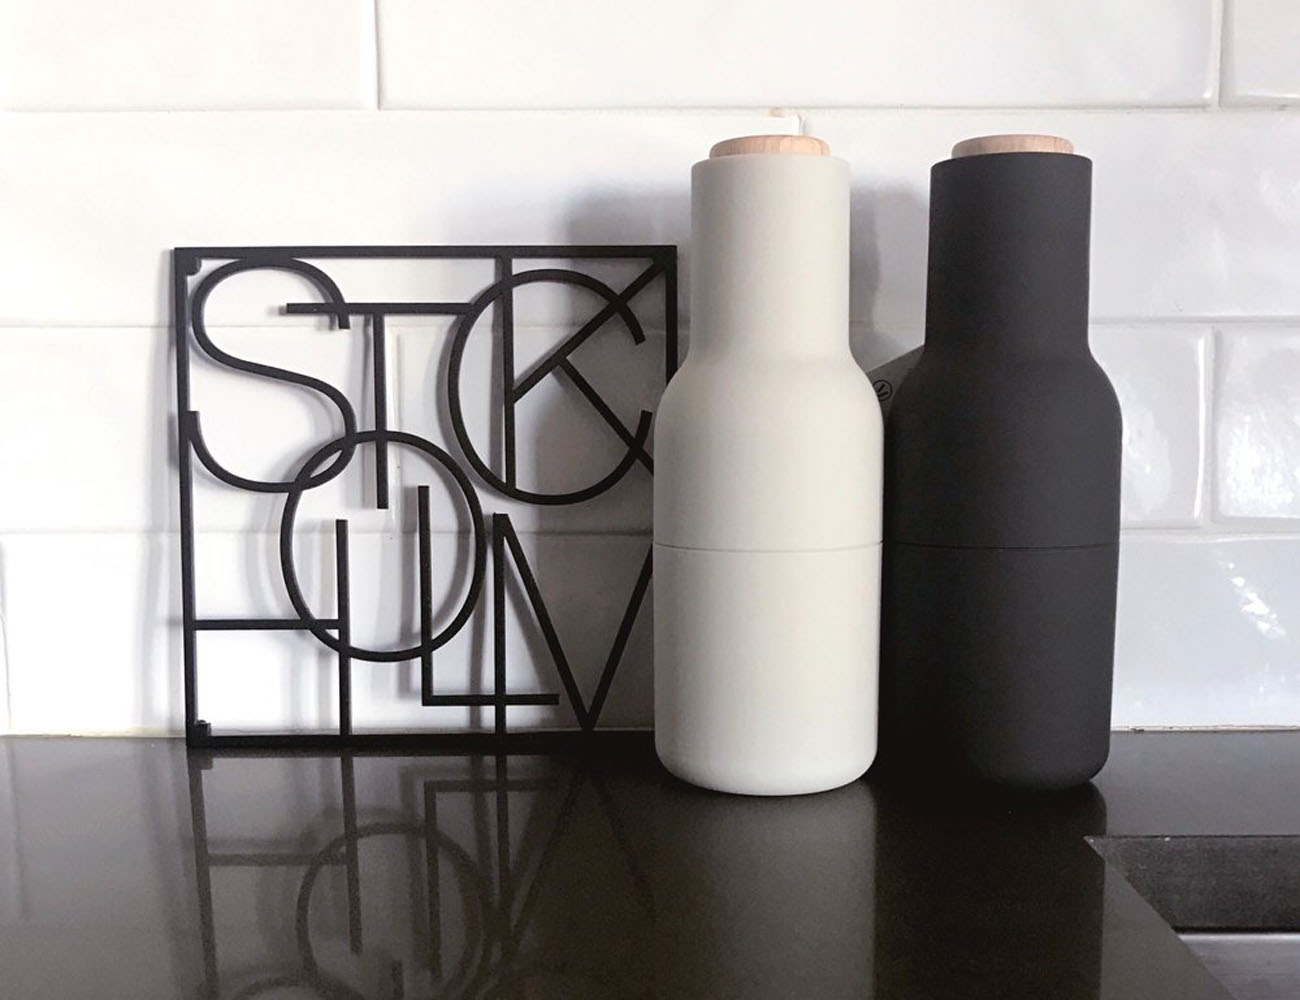 Salt & Pepper Bottle Grinder by Norm Architects